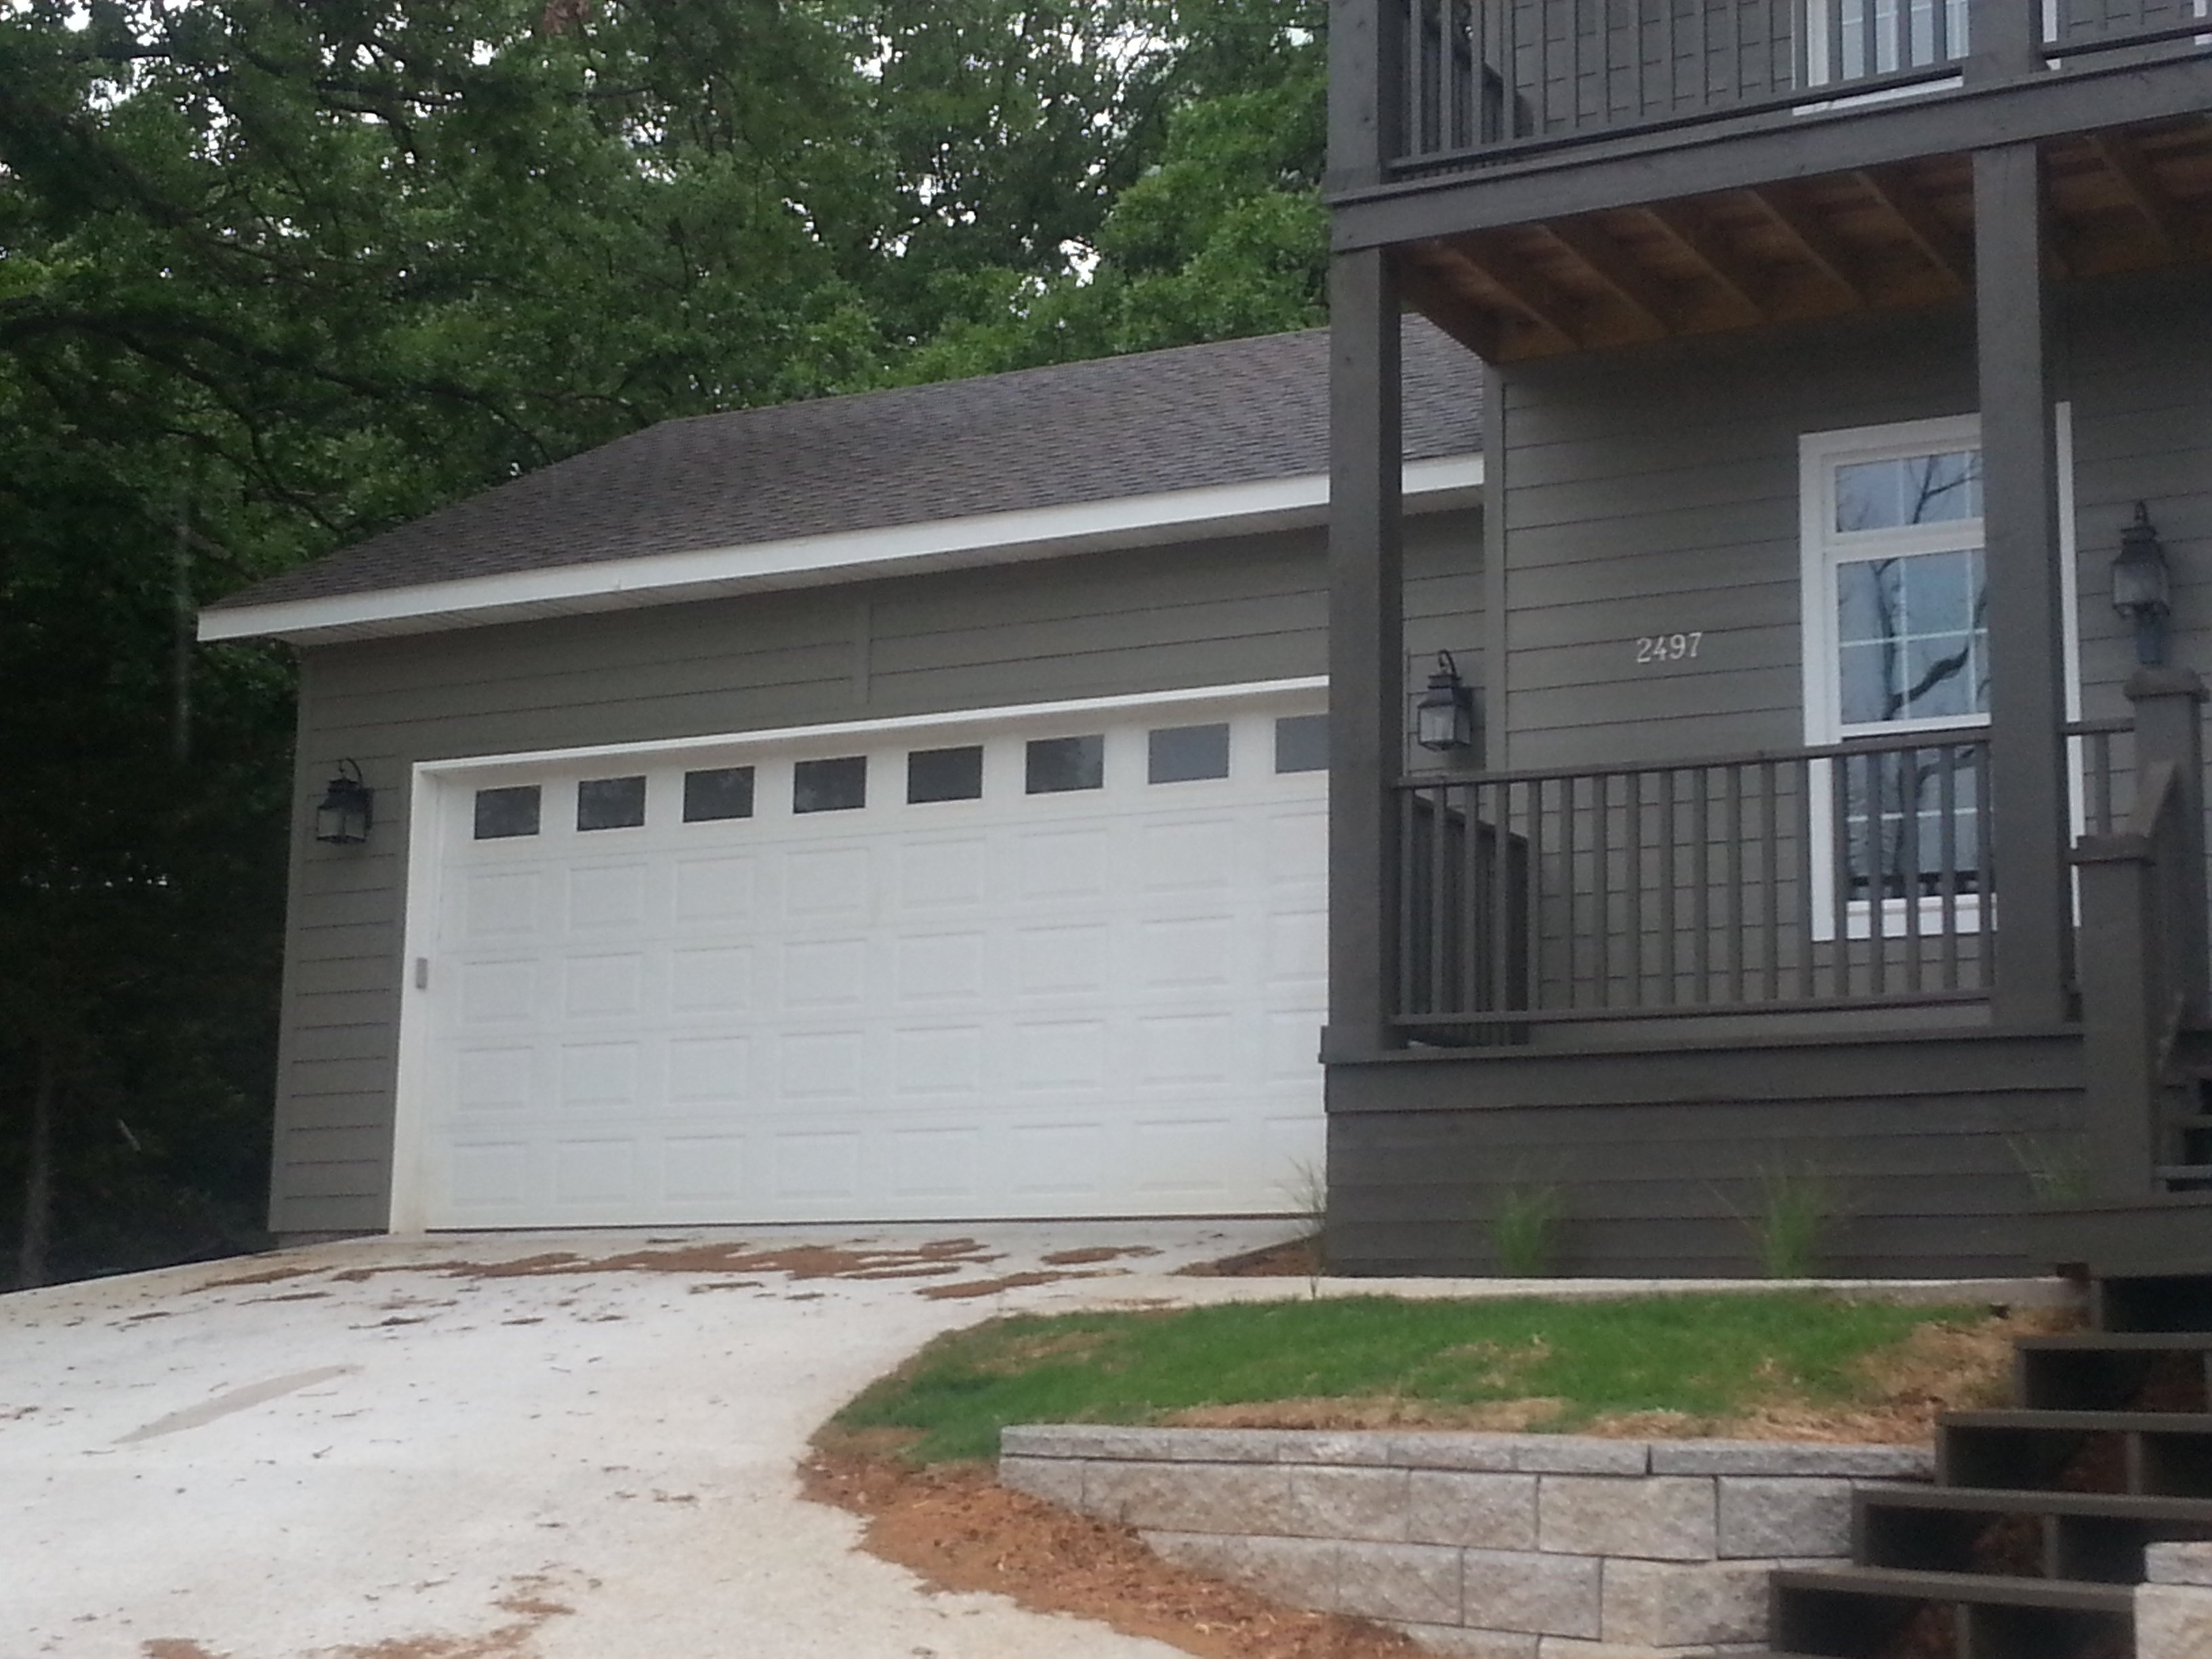 1440 #4B5F3B Kennith's Overhead Door Garage Doors Springdale AR pic Roll Up Residential Garage Doors 38511920